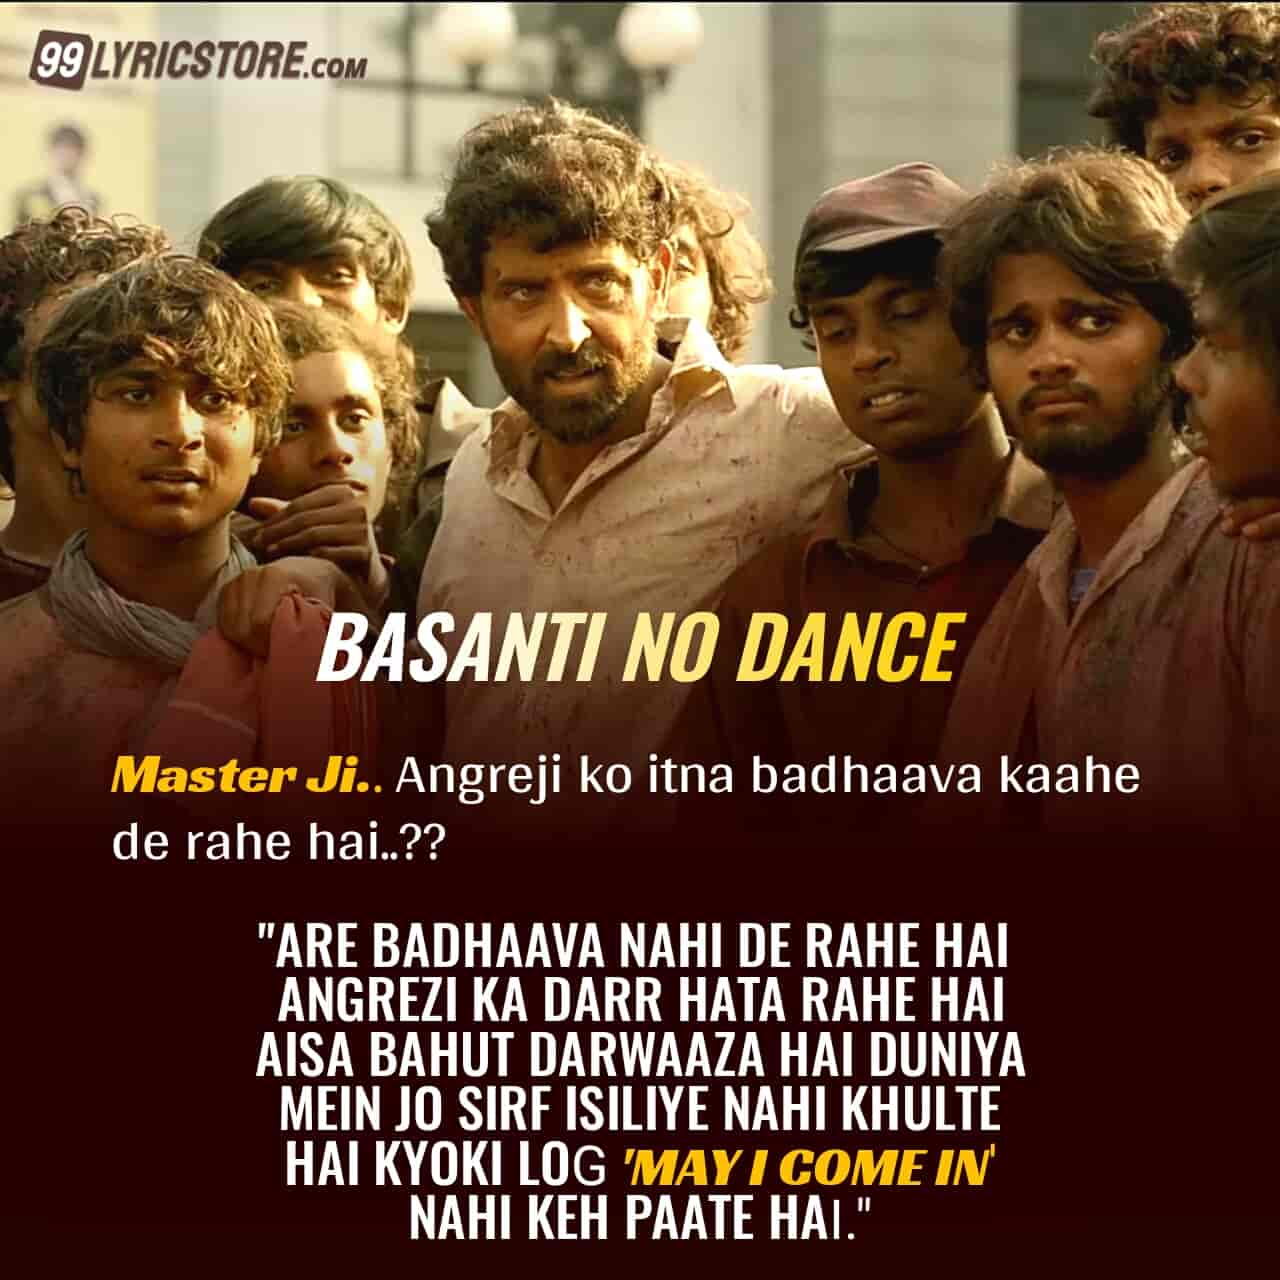 Basanti No Dance Hindi songs Lyrics from movie Super 30